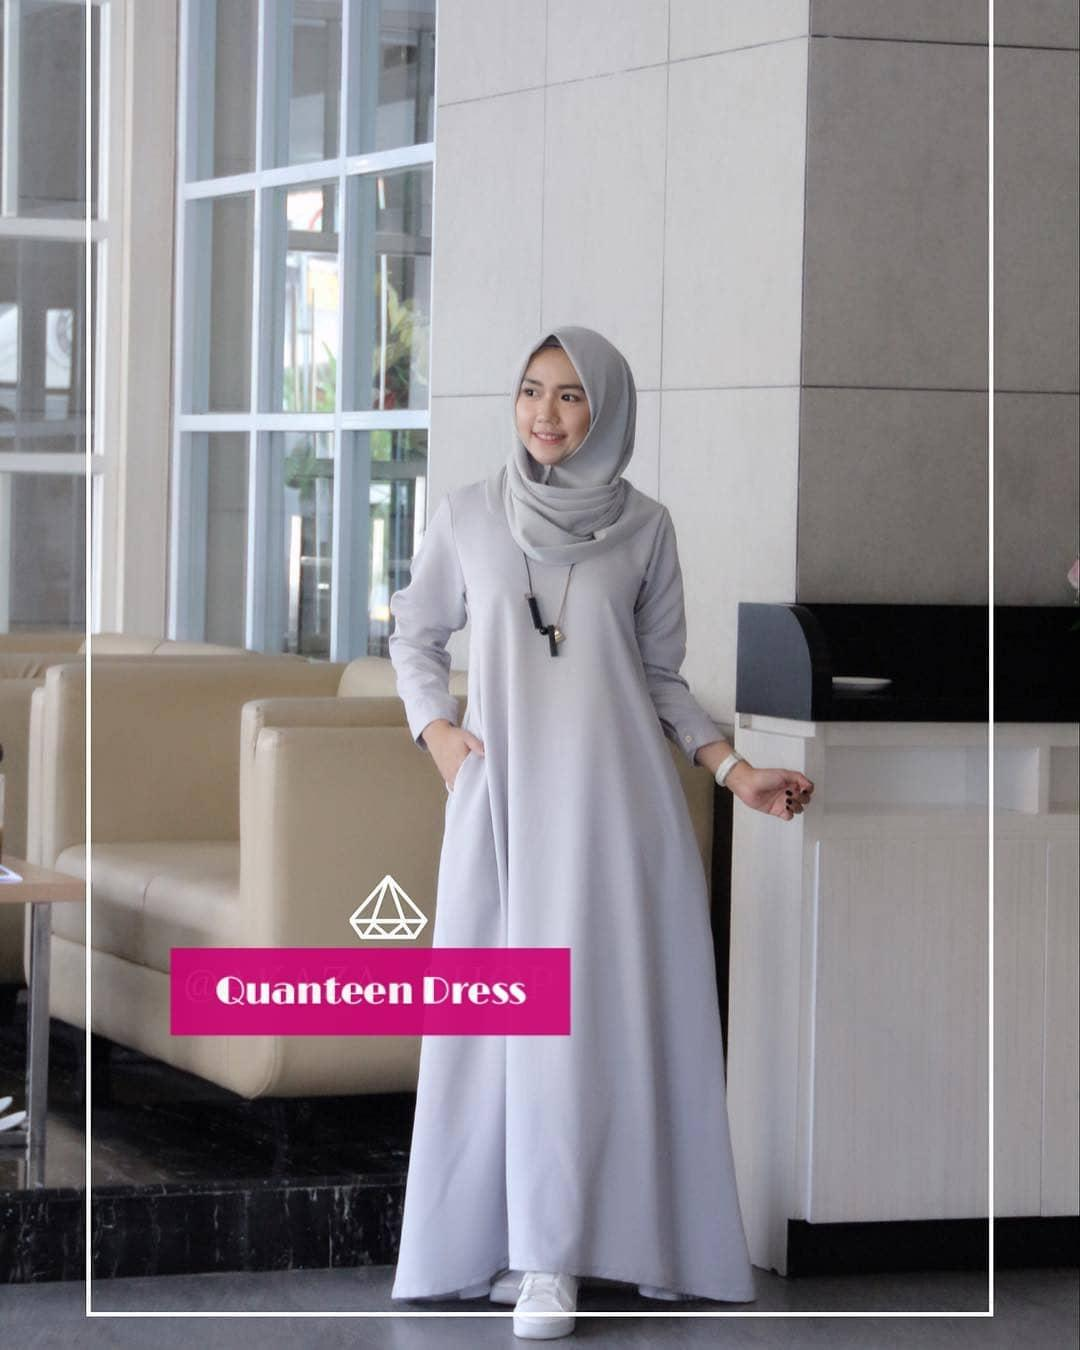 Busana Wanita Muslim Model mal QUANTEEN DRESS bahan balotely dengan Zipper BUSUI Trendy Simple Modis dan Elegant